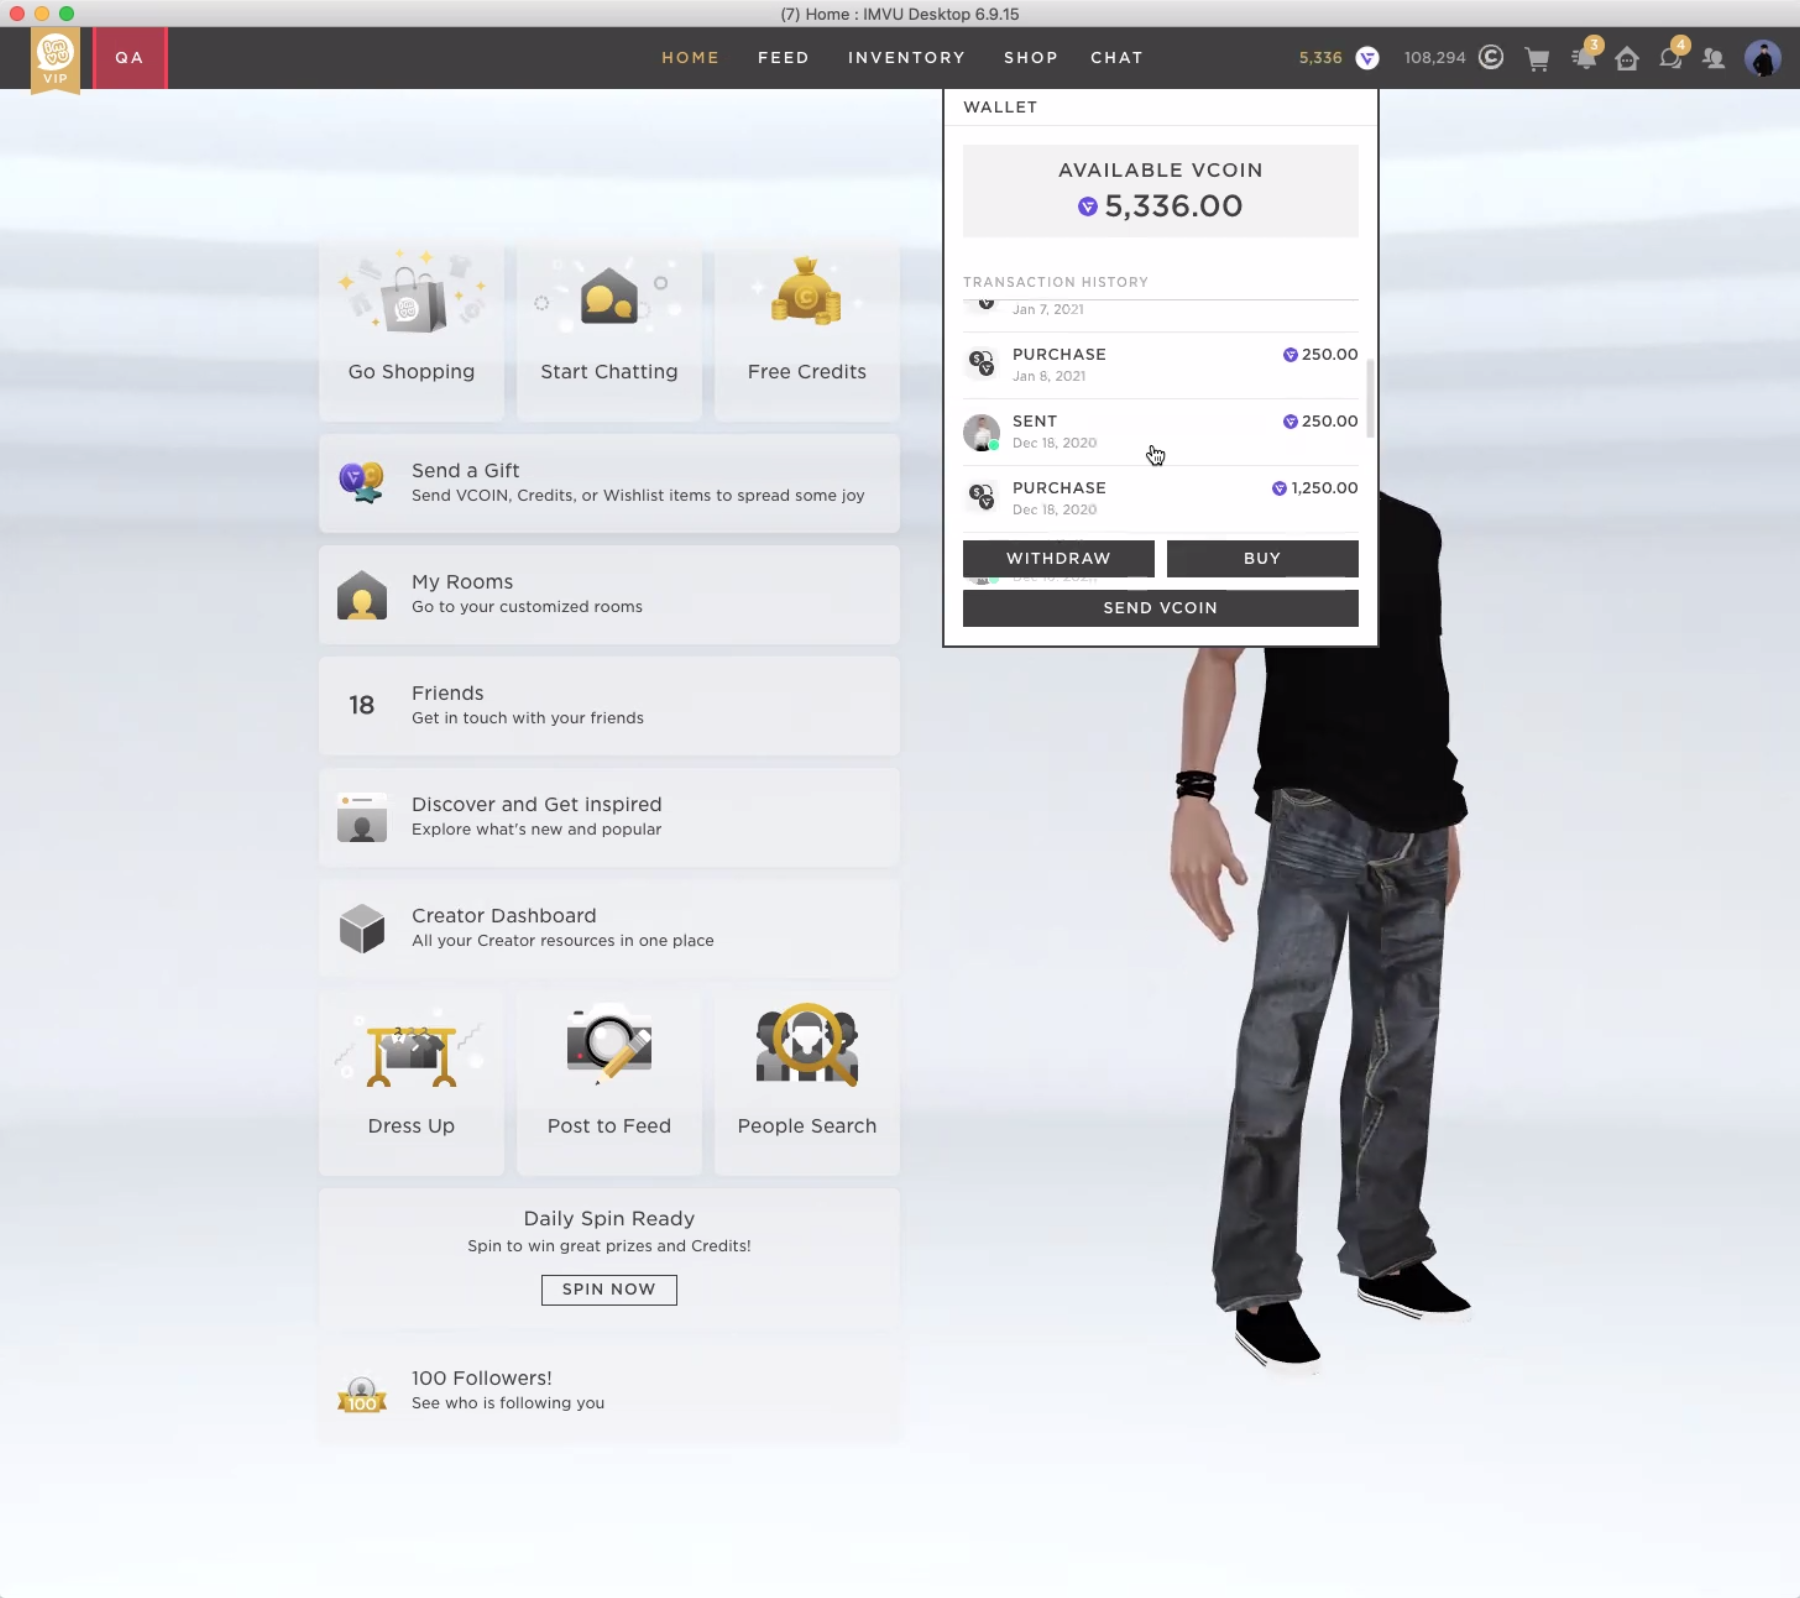 One of IMVU's interfaces for purchasing VCOIN